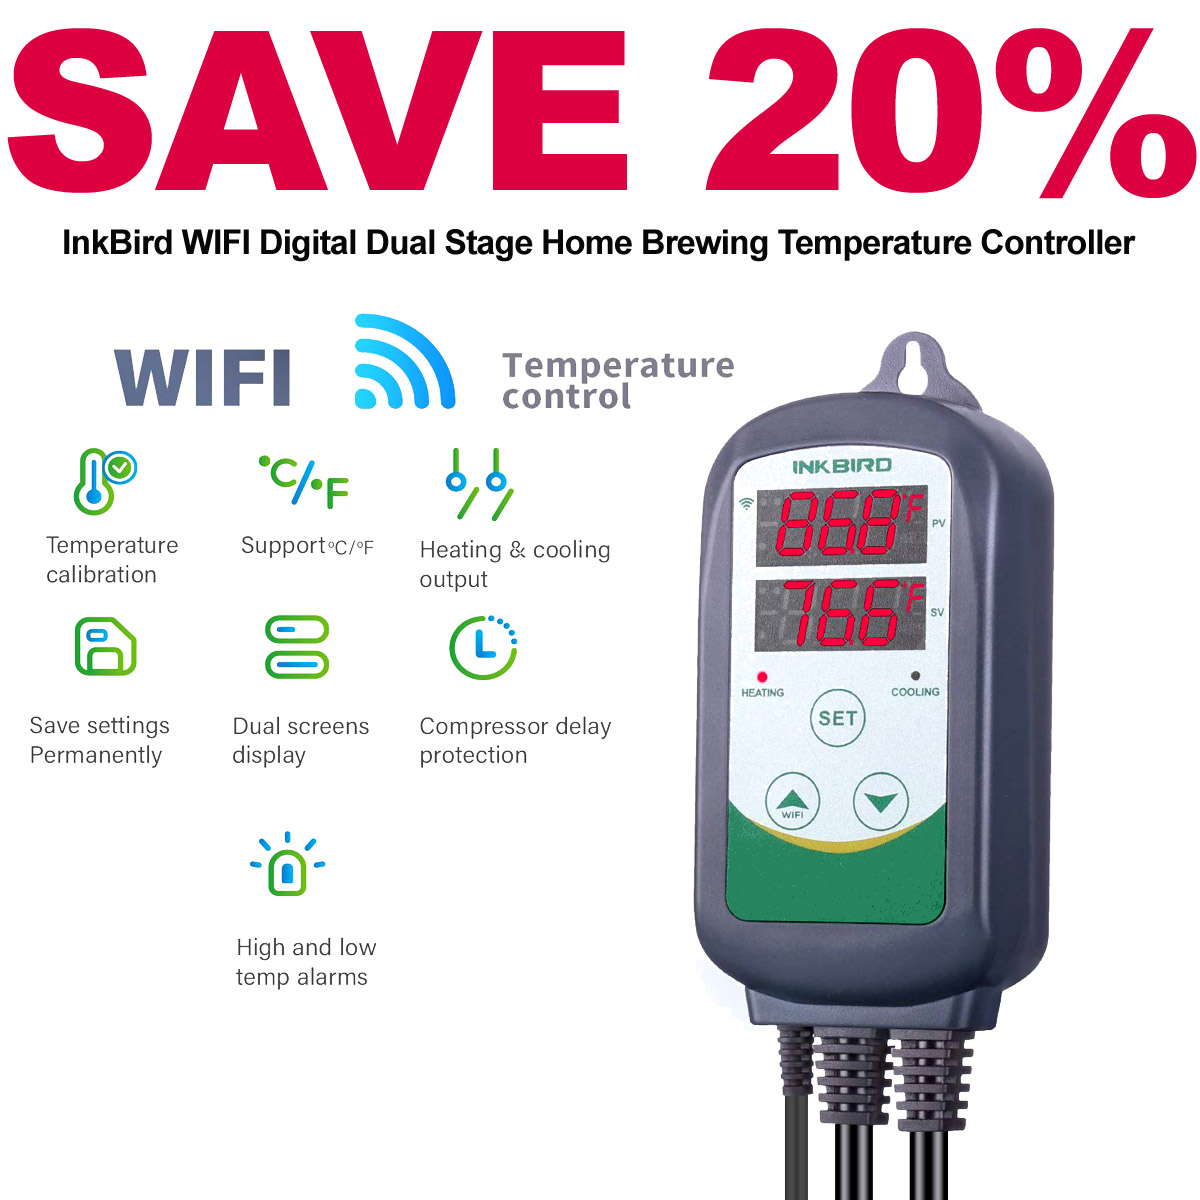 Home Wine Making Coupon Codes for Save 20% On An Inkbird Dual Stage Temperature Controller with WIFI Connectivity with this INKBIRD Promo Code. Plus get FREE Shipping. Coupon Code